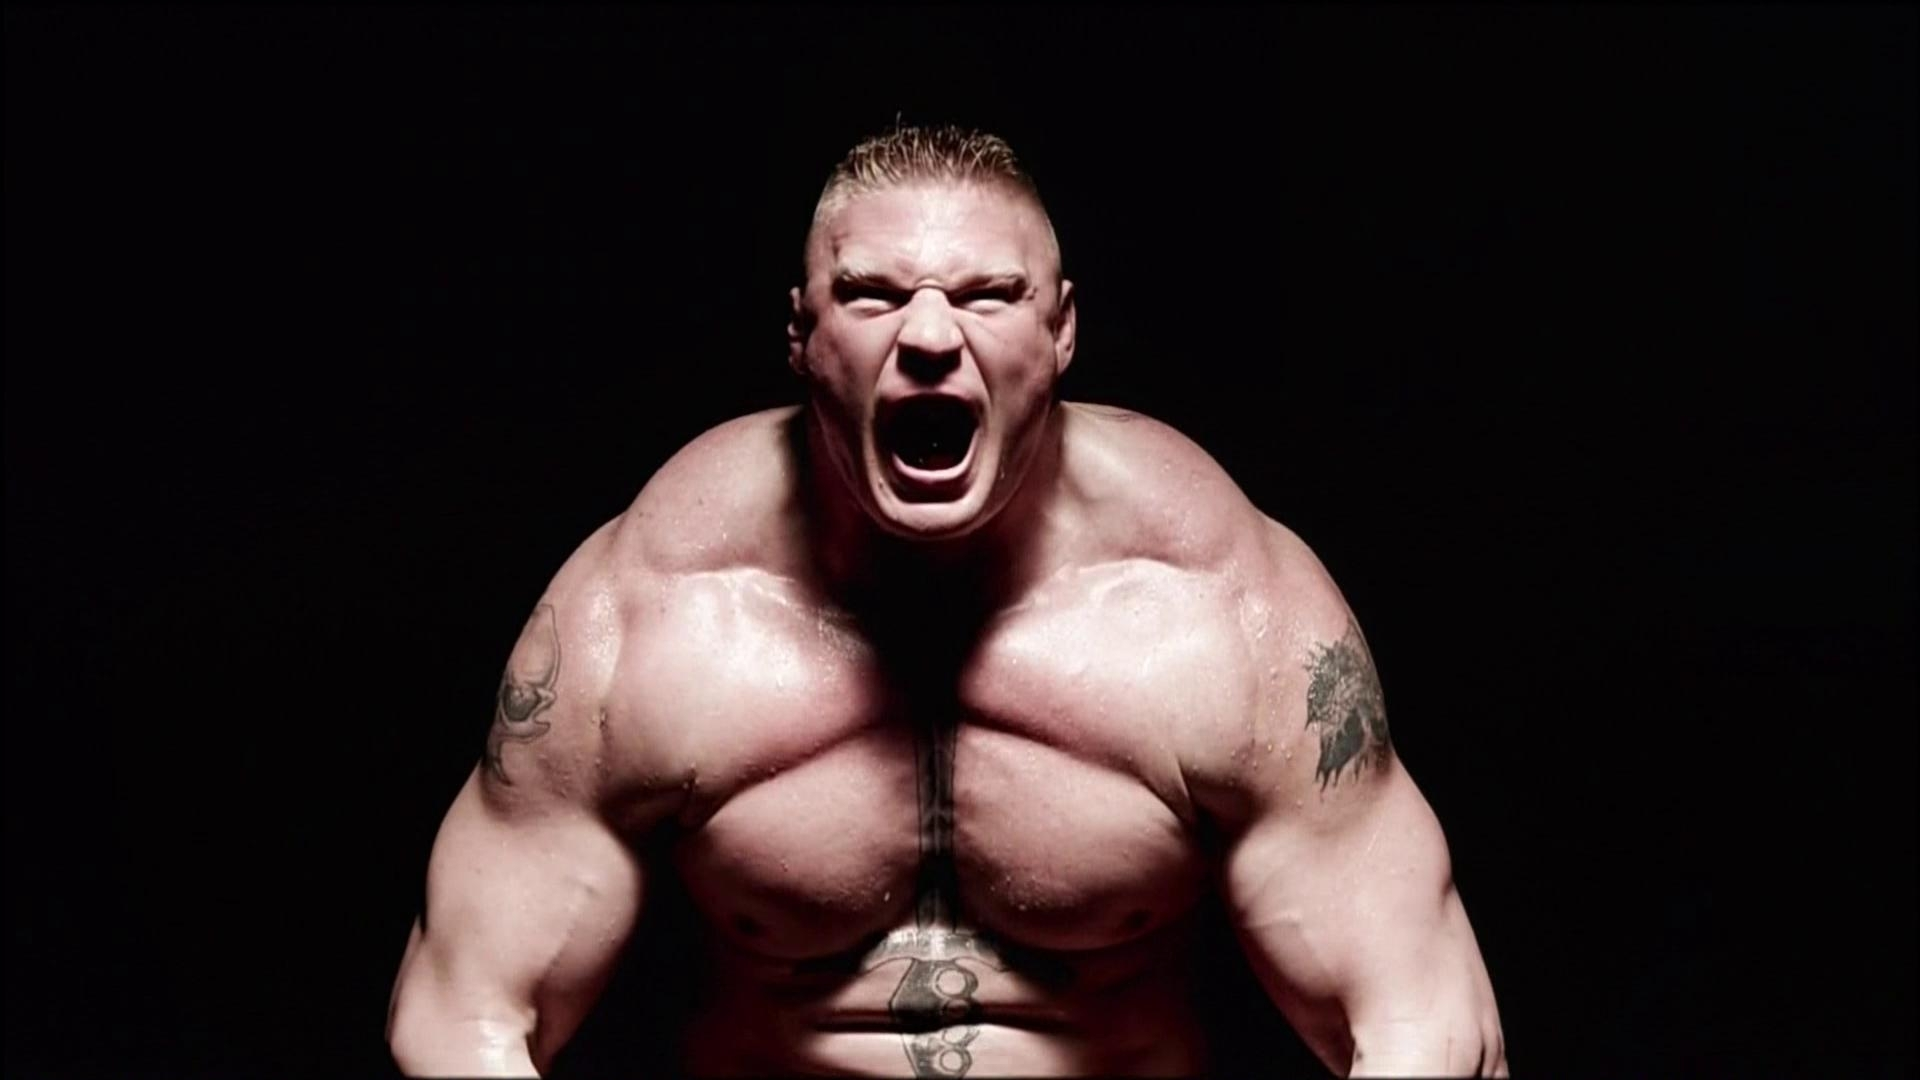 brock lesnar hd wallpapers - free download latest brock lesnar hd